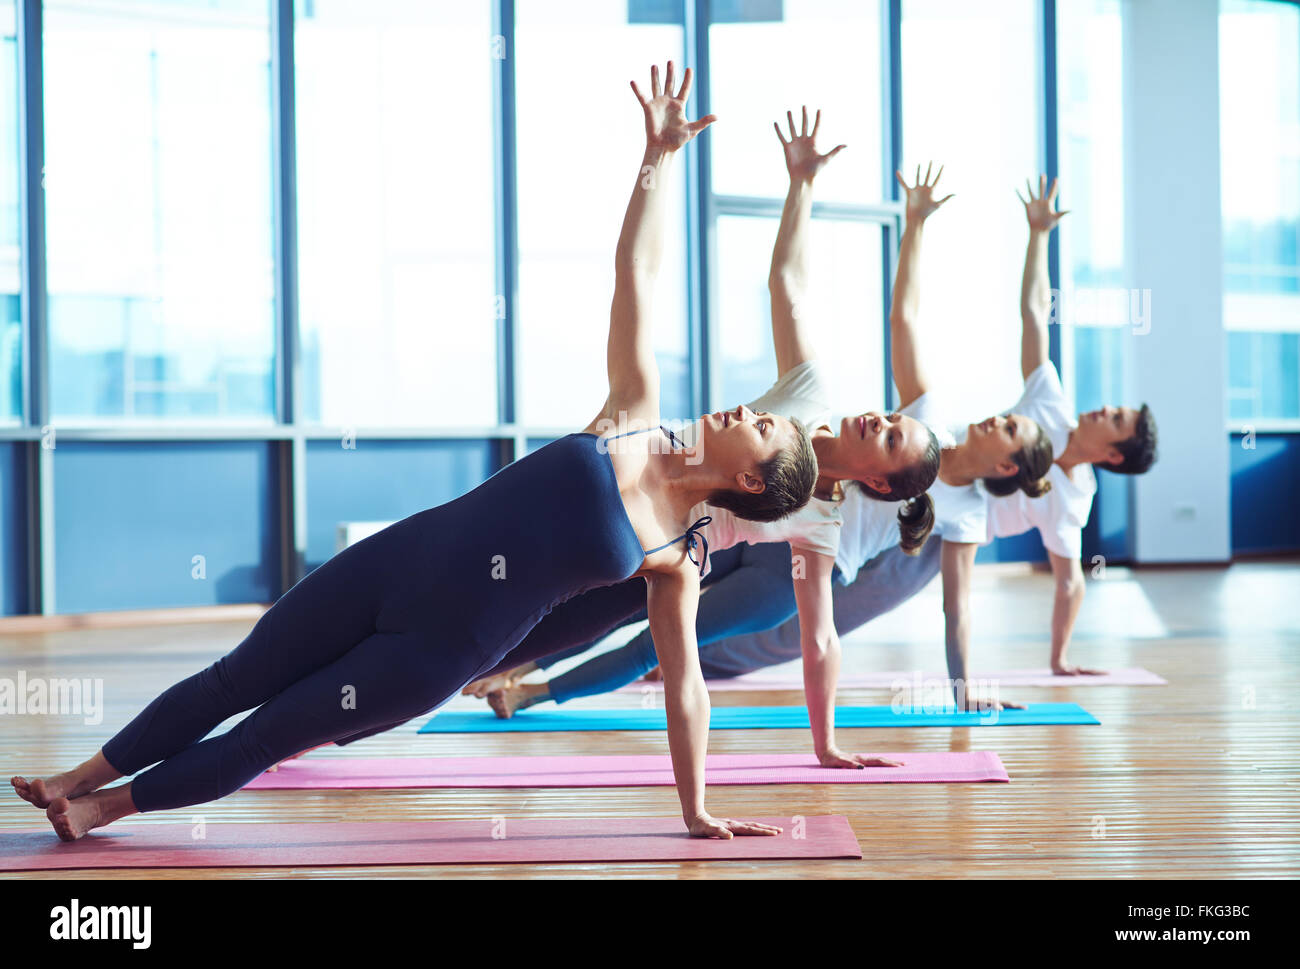 Group of young people practicing side plank yoga pose during a class in gym - Stock Image